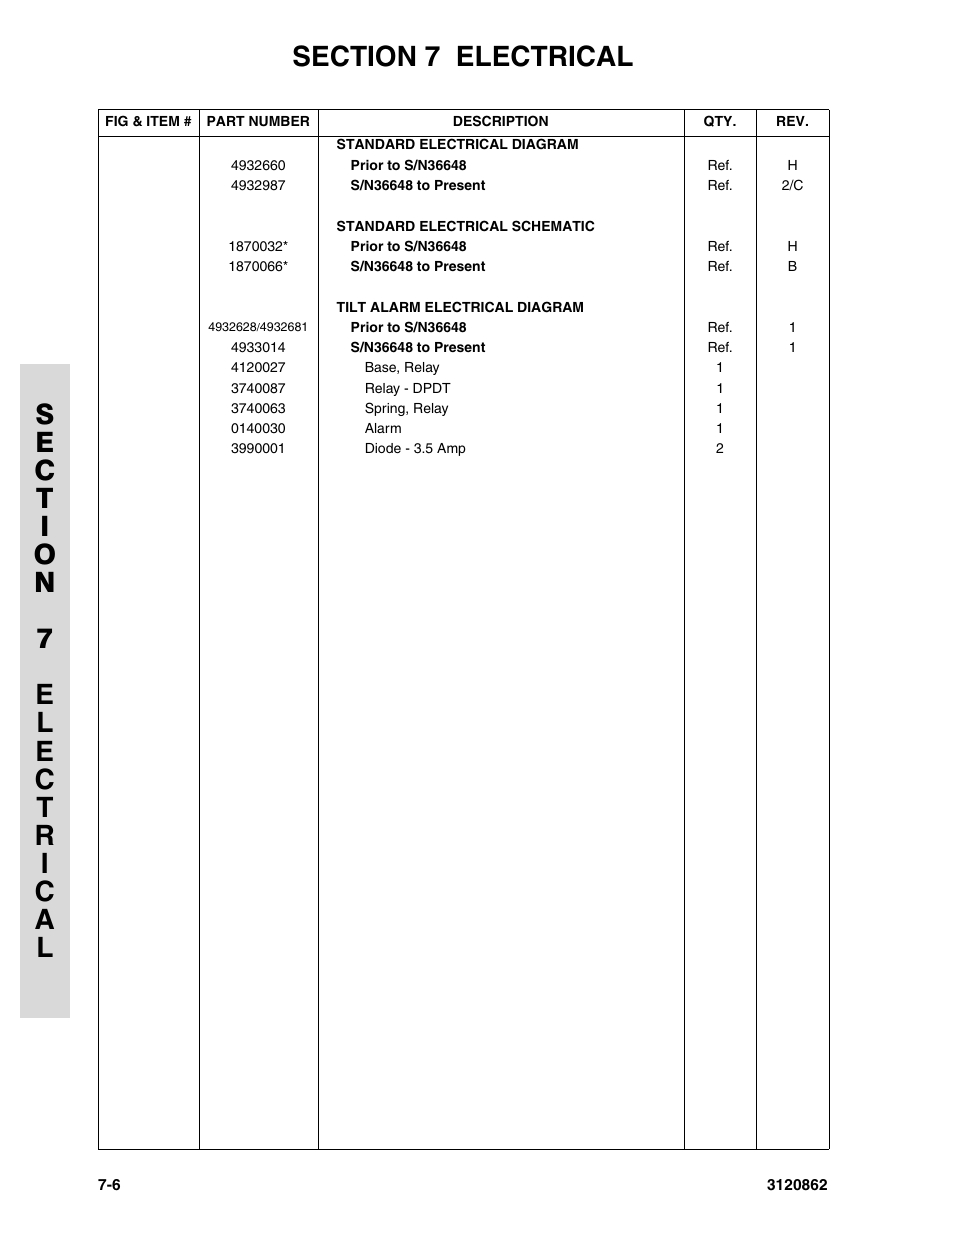 Jlg N40e Wiring Diagram Schematics Diagrams 45e Parts Manual User Page 178 230 Also For G10 55a